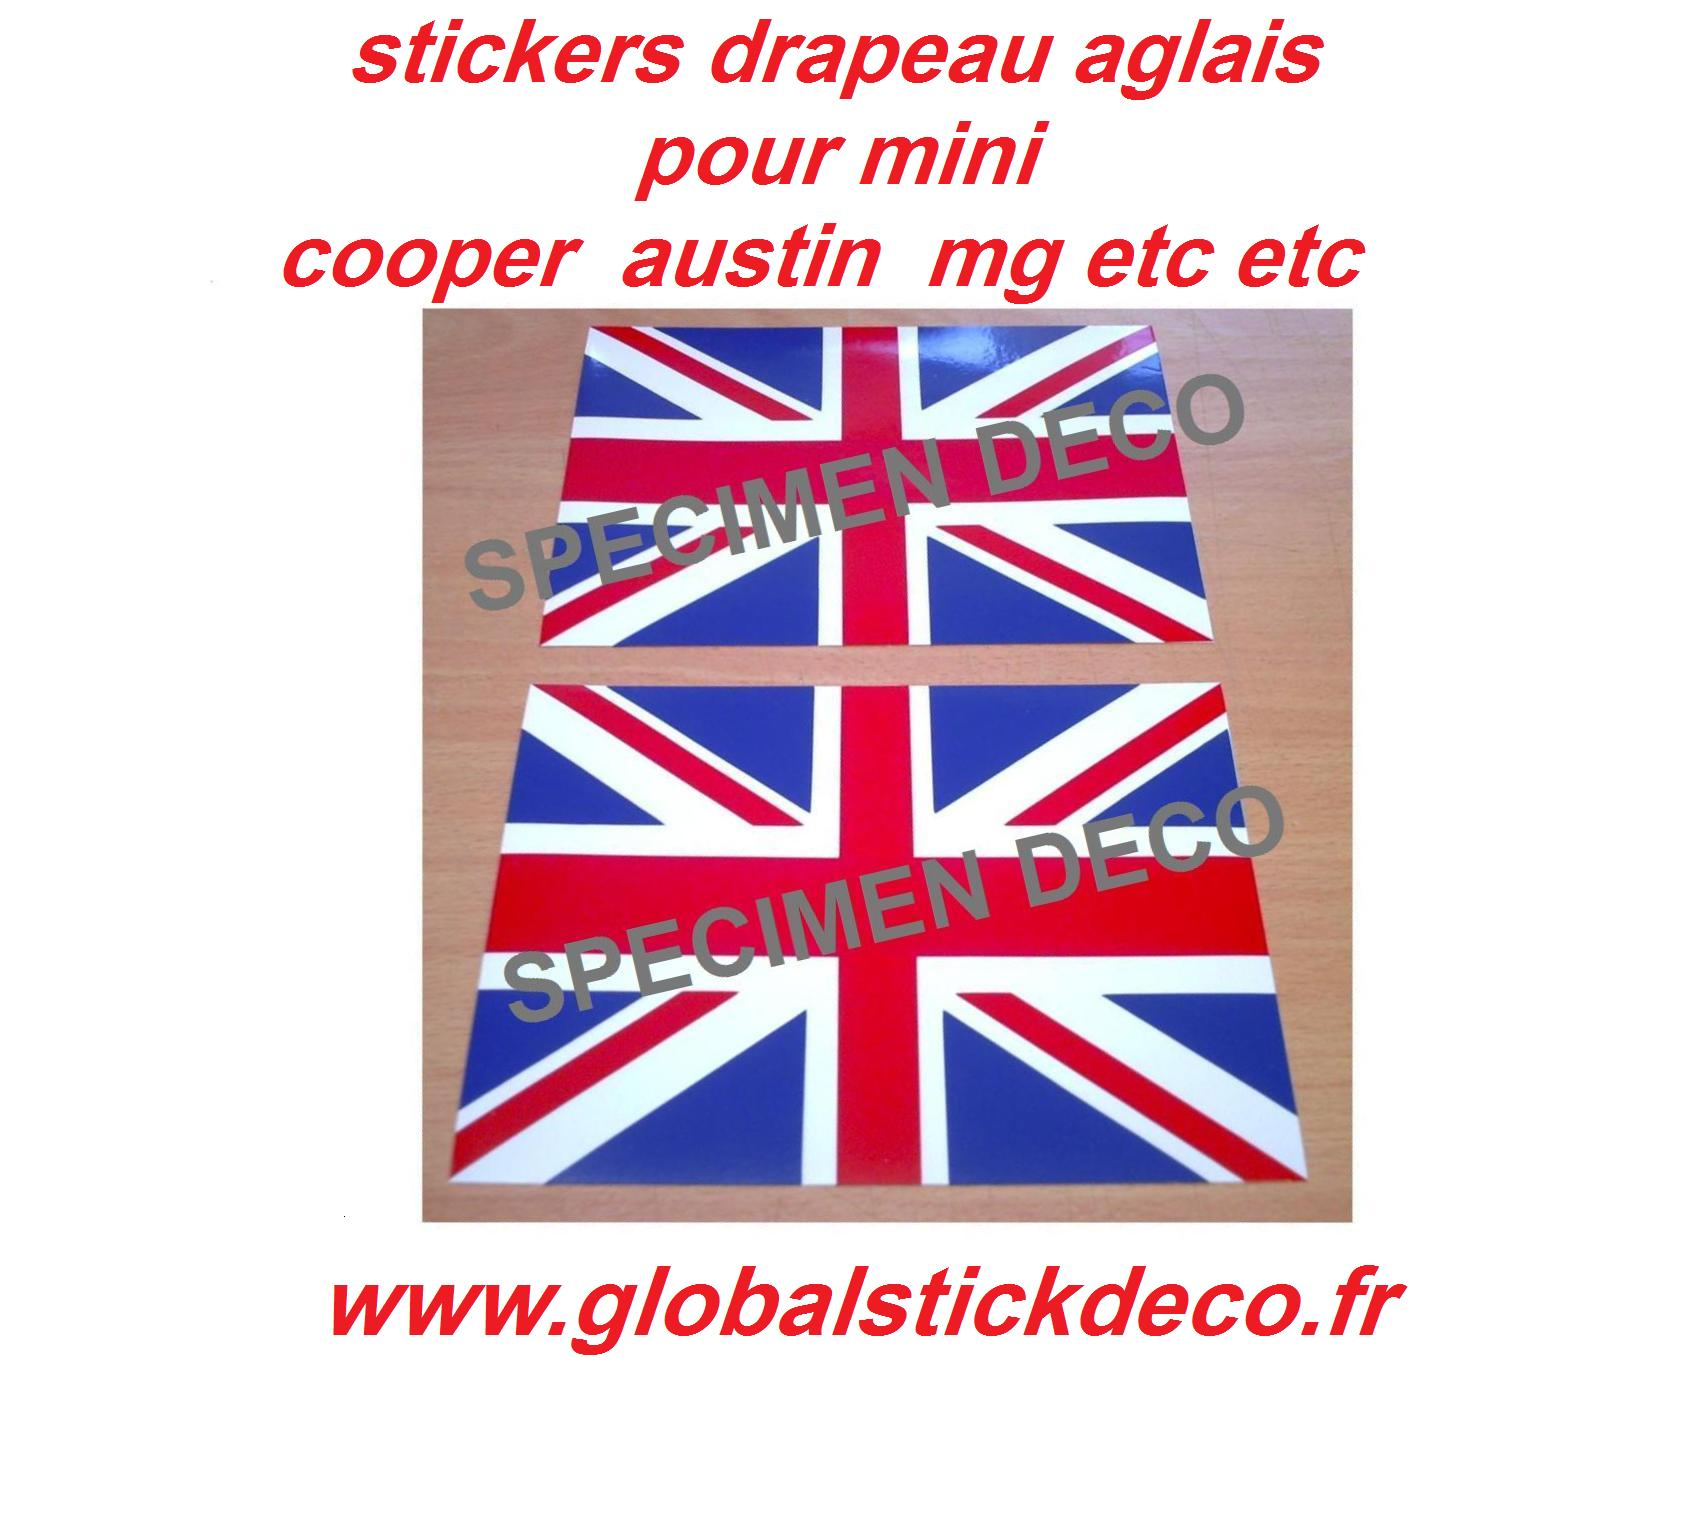 Stickers milieuavril renault sport mg etc etc 061